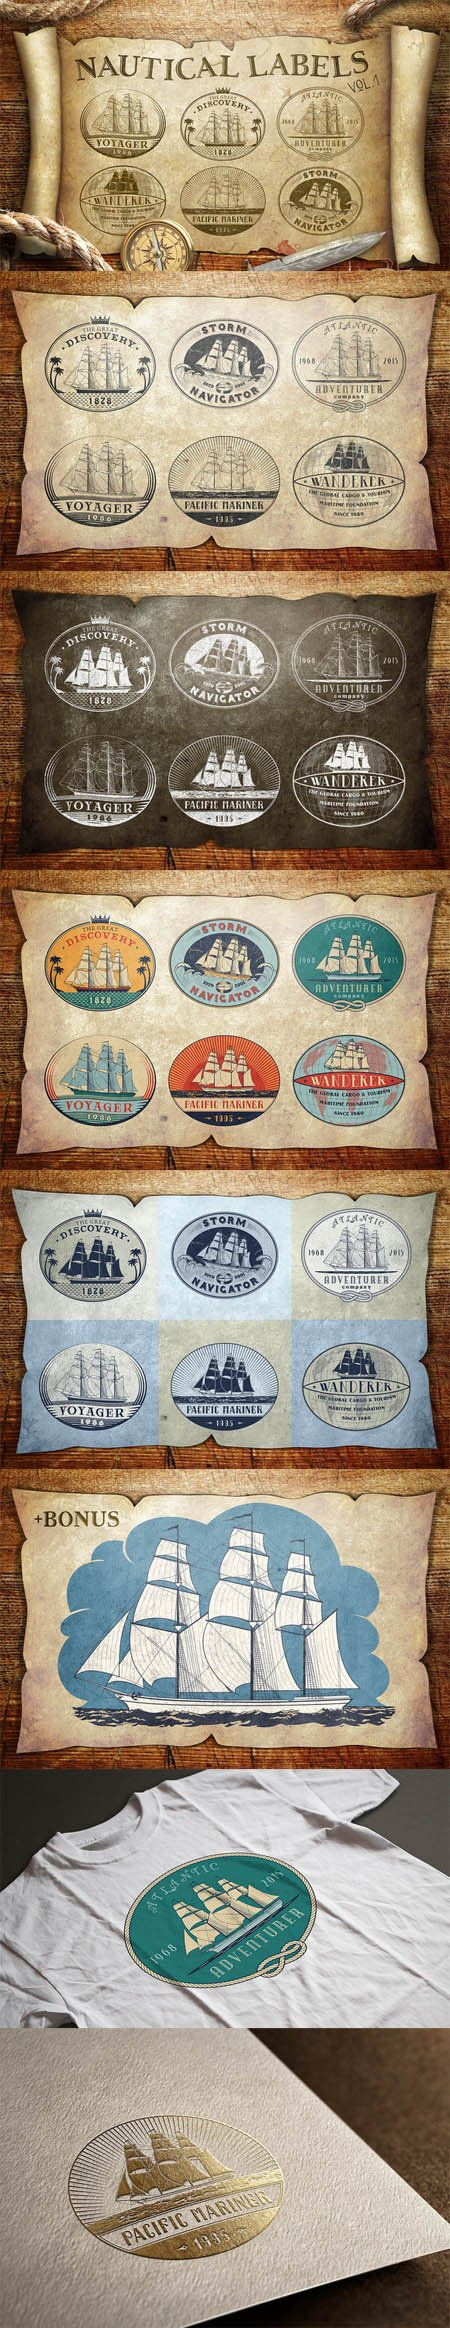 CM - Nautical Labels vol. 1 388700